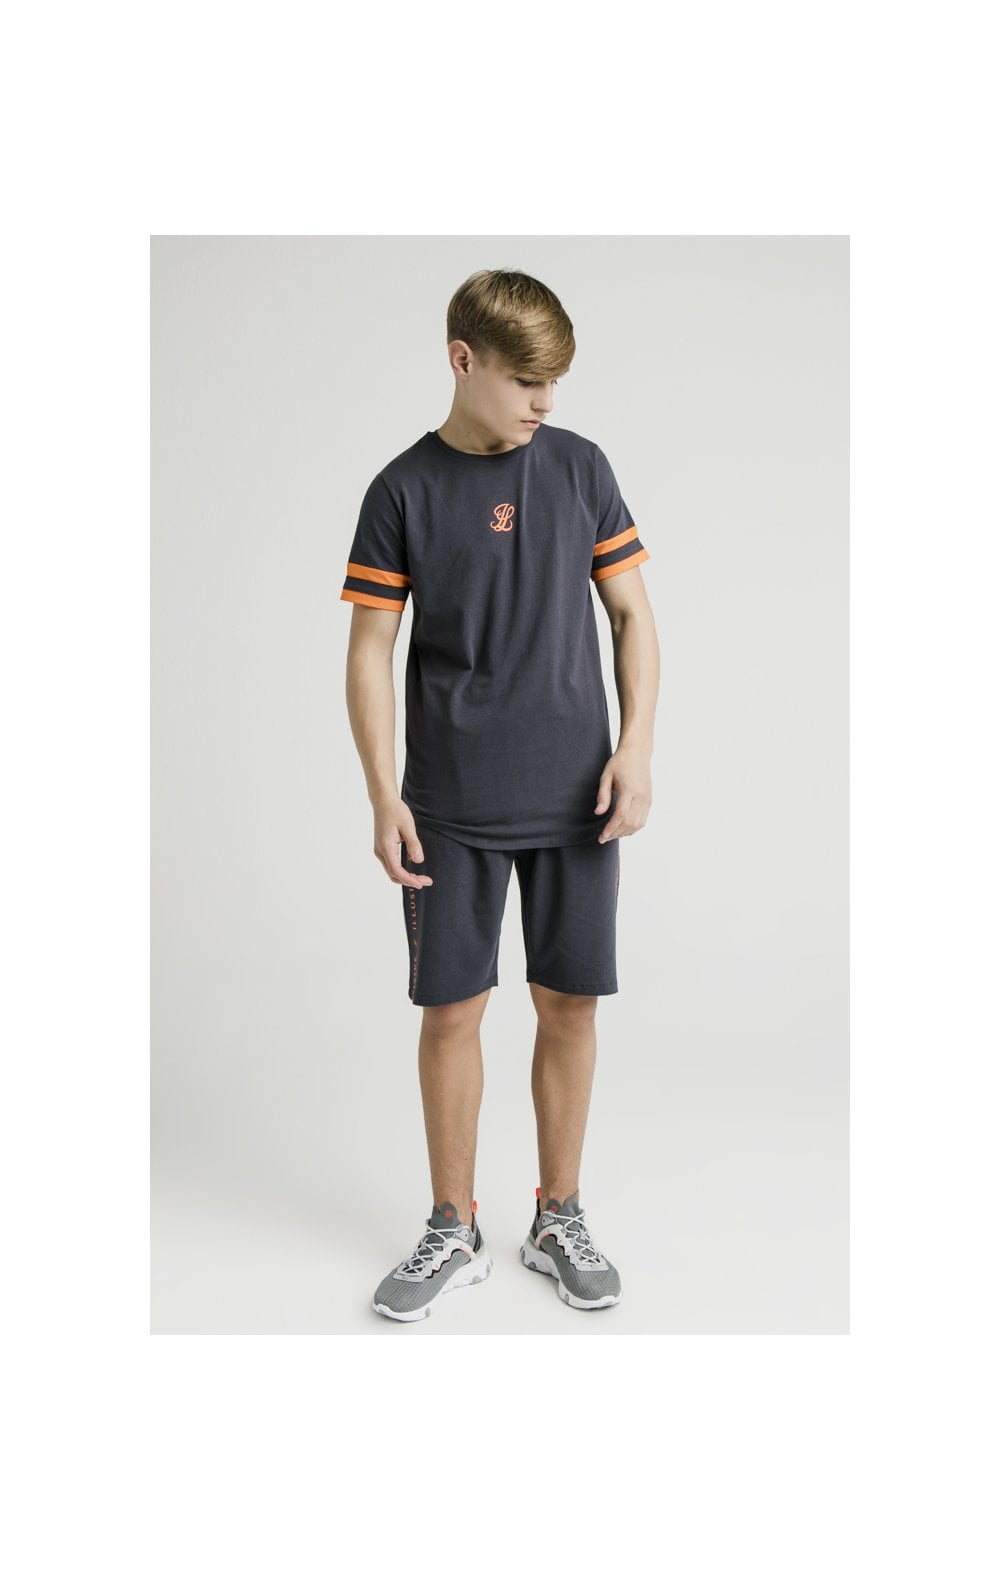 Load image into Gallery viewer, Illusive London Jersey Shorts – Grey & Orange (3)